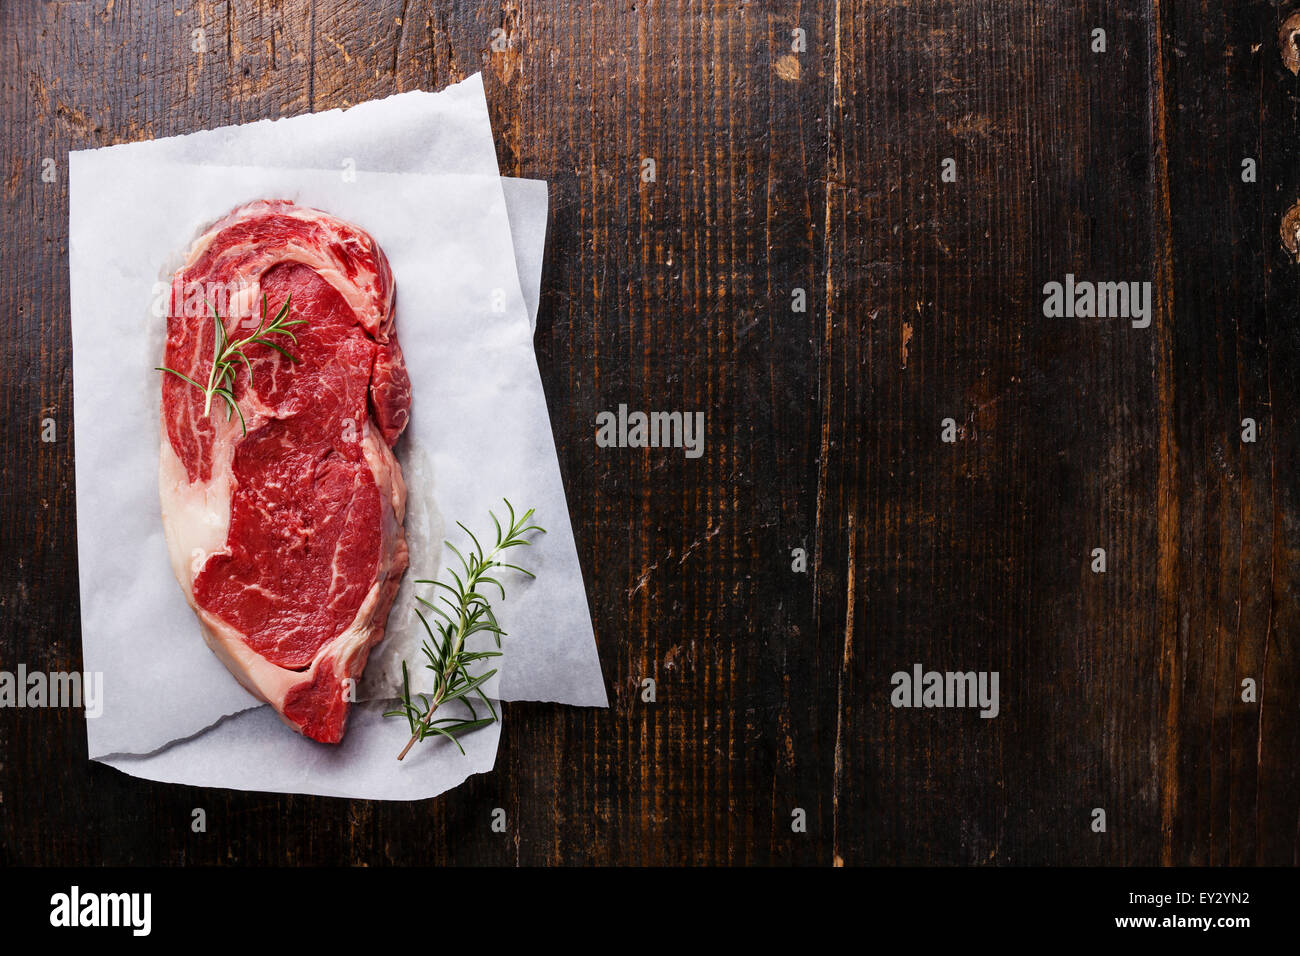 Raw fresh marbled meat Black Angus Steak and rosemary on dark wooden background - Stock Image